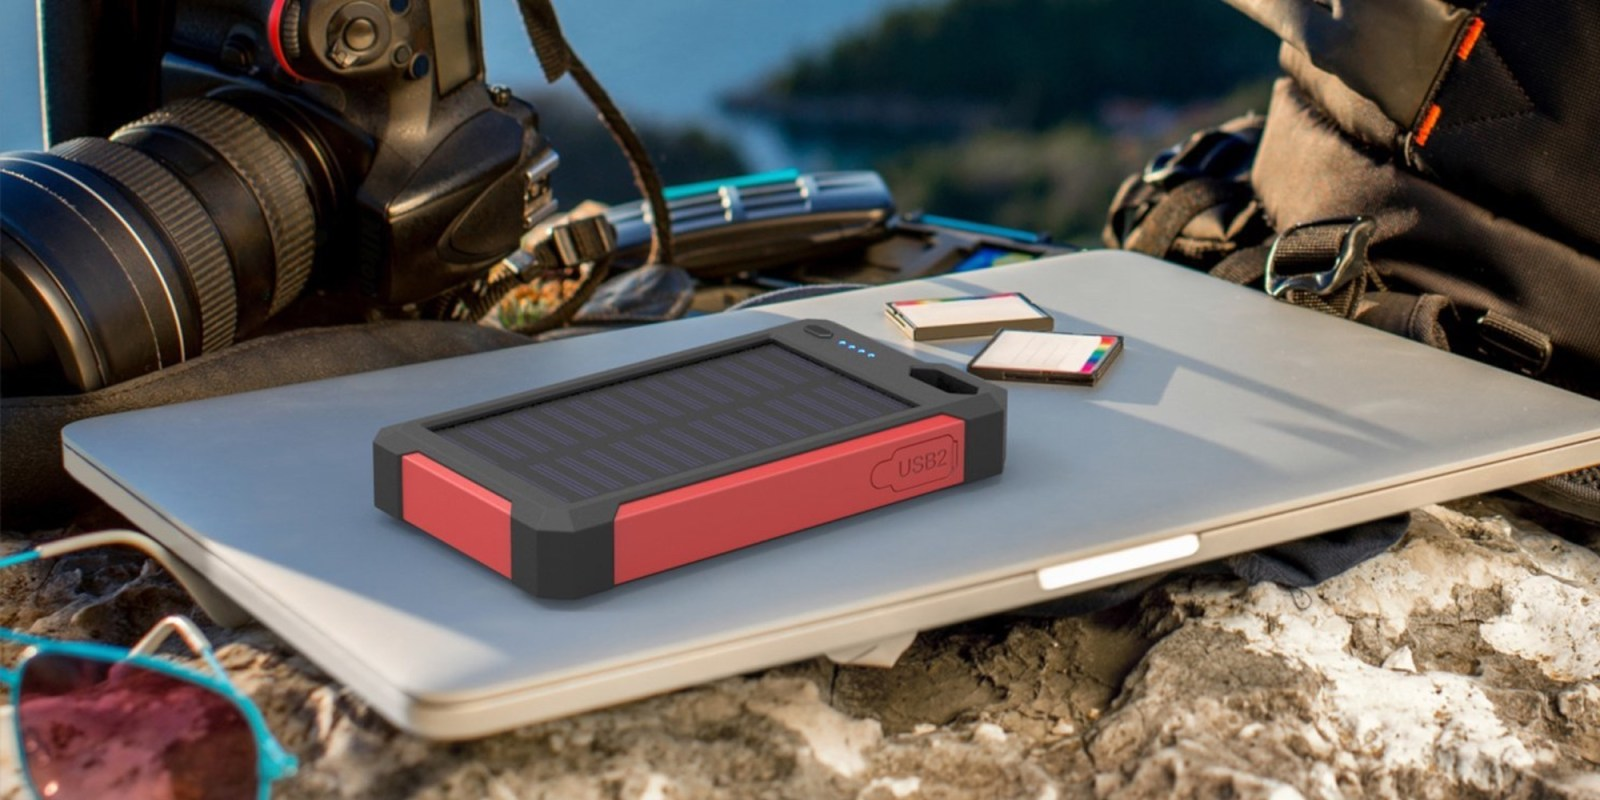 iClever 10,000mAh Solar Power Bank $15 Prime shipped, more